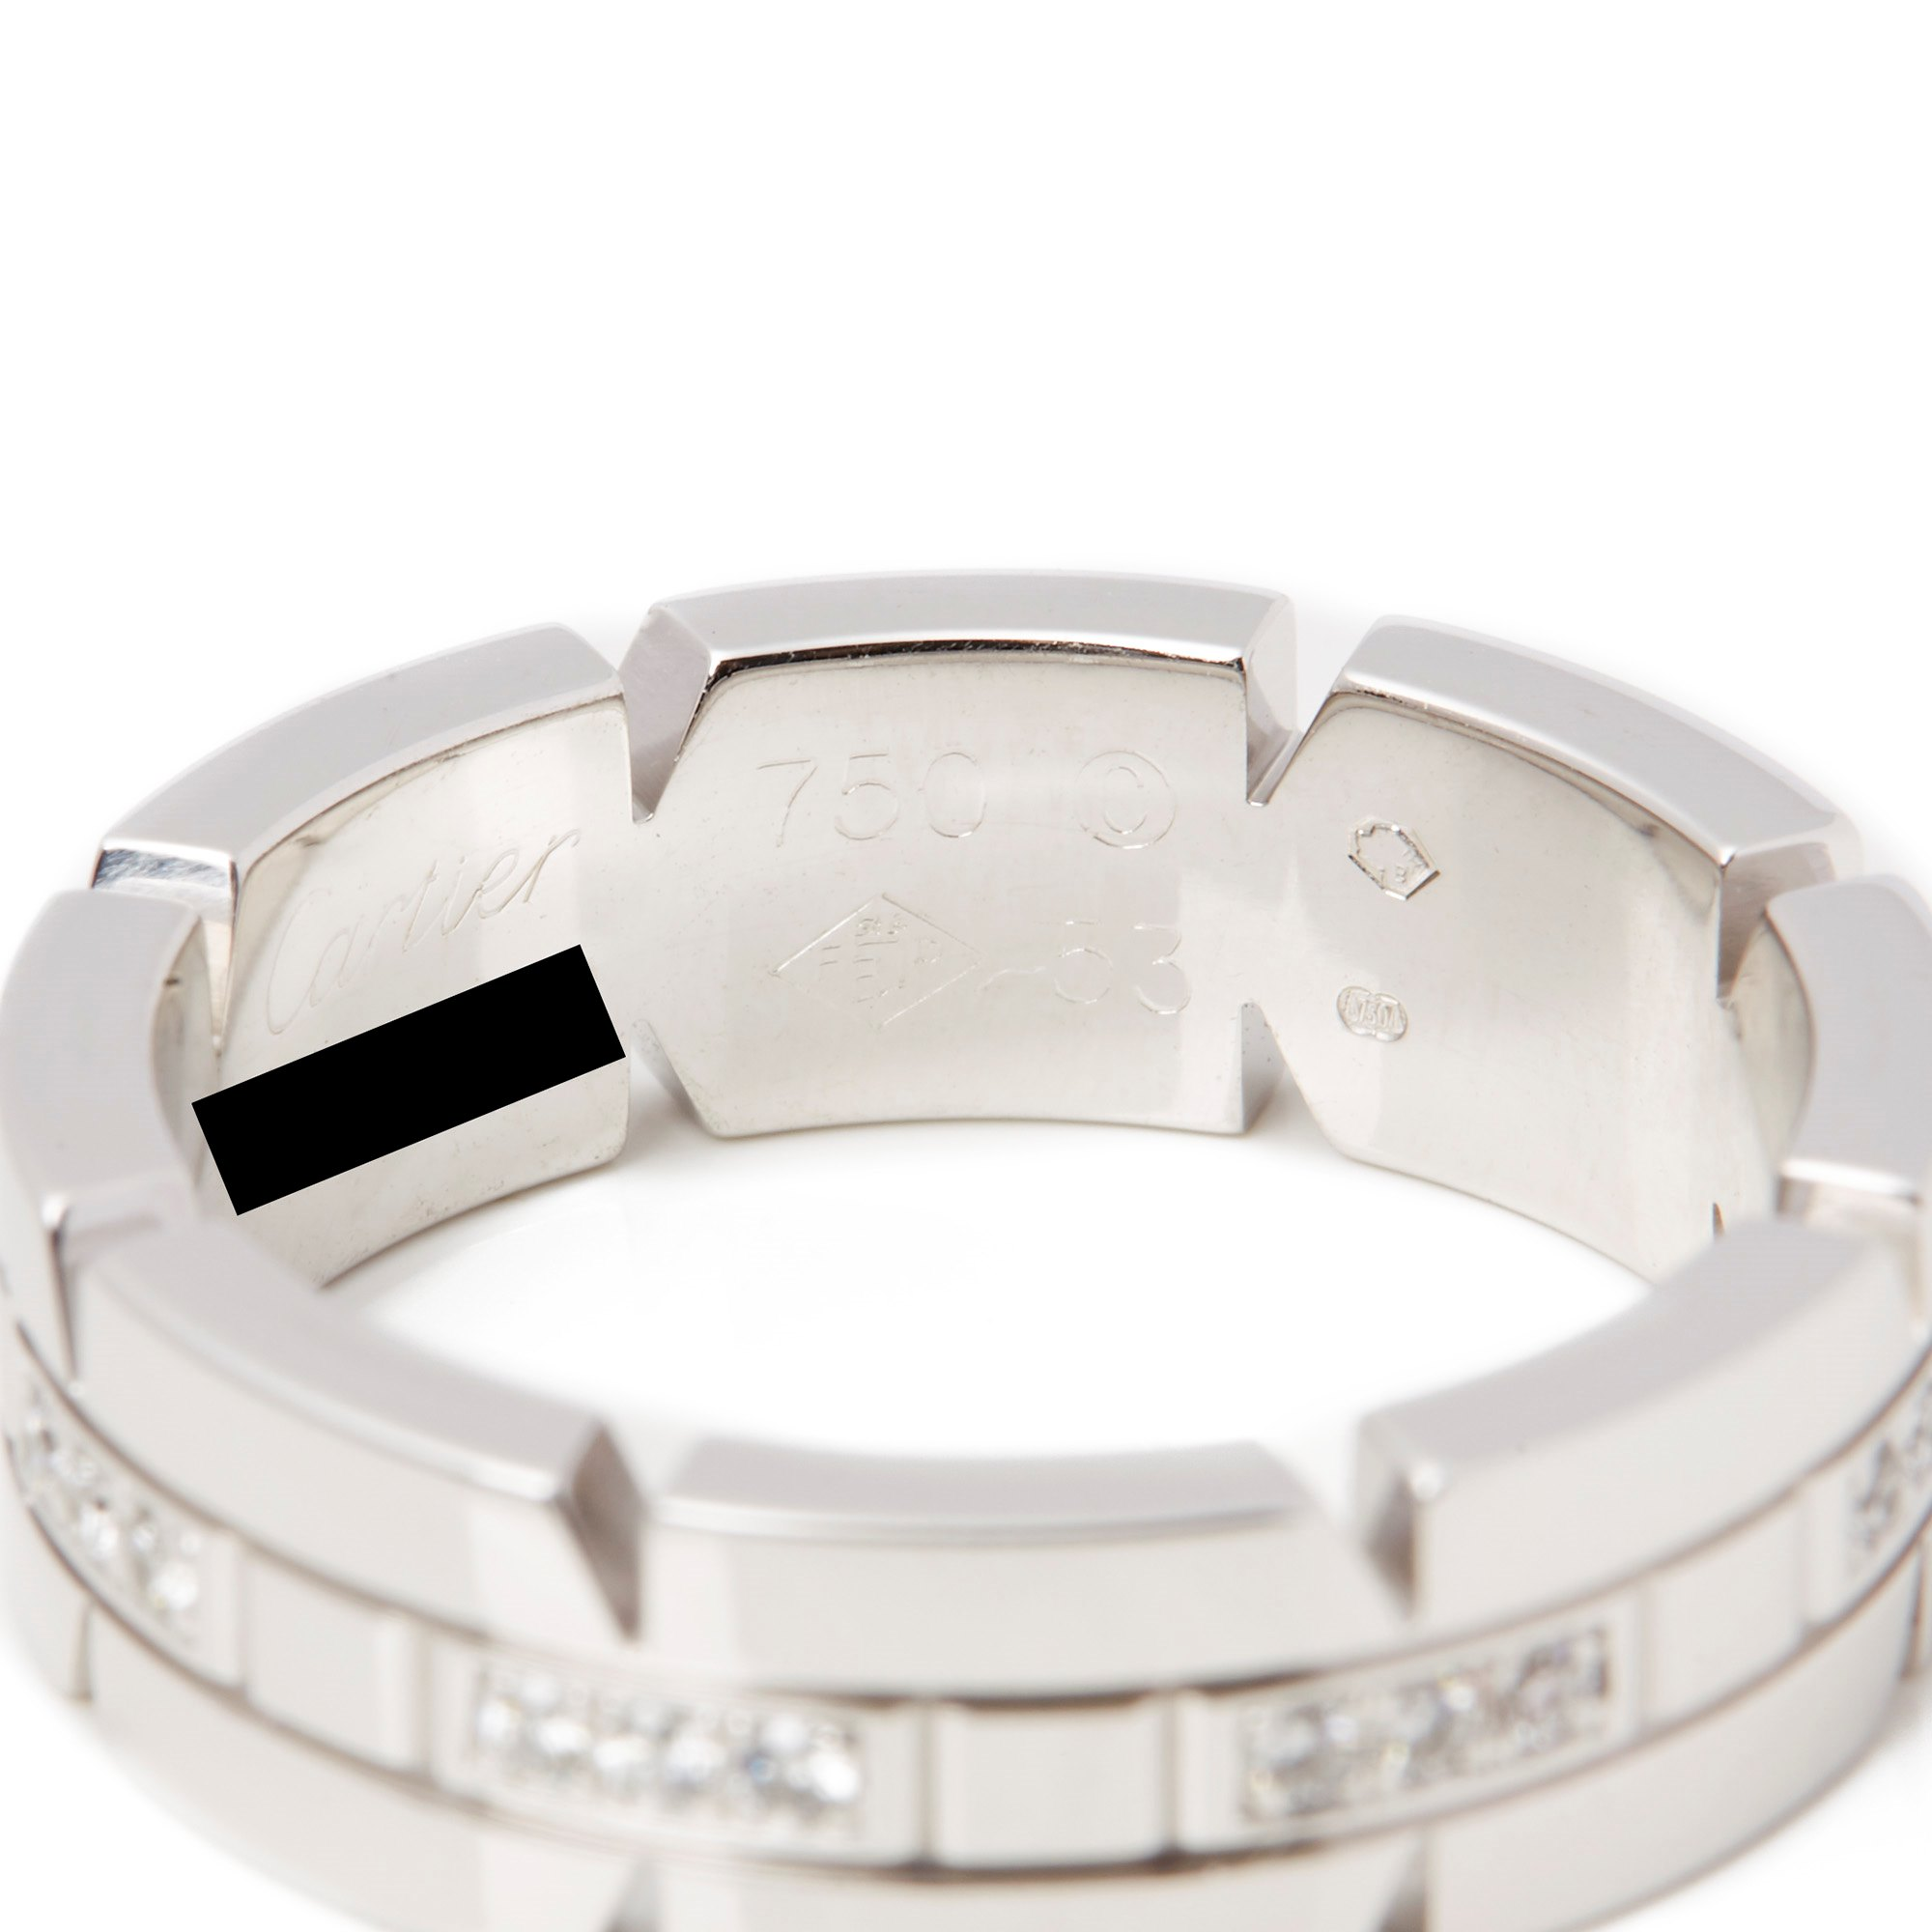 Cartier 18ct Gold Tank Francaise Ring